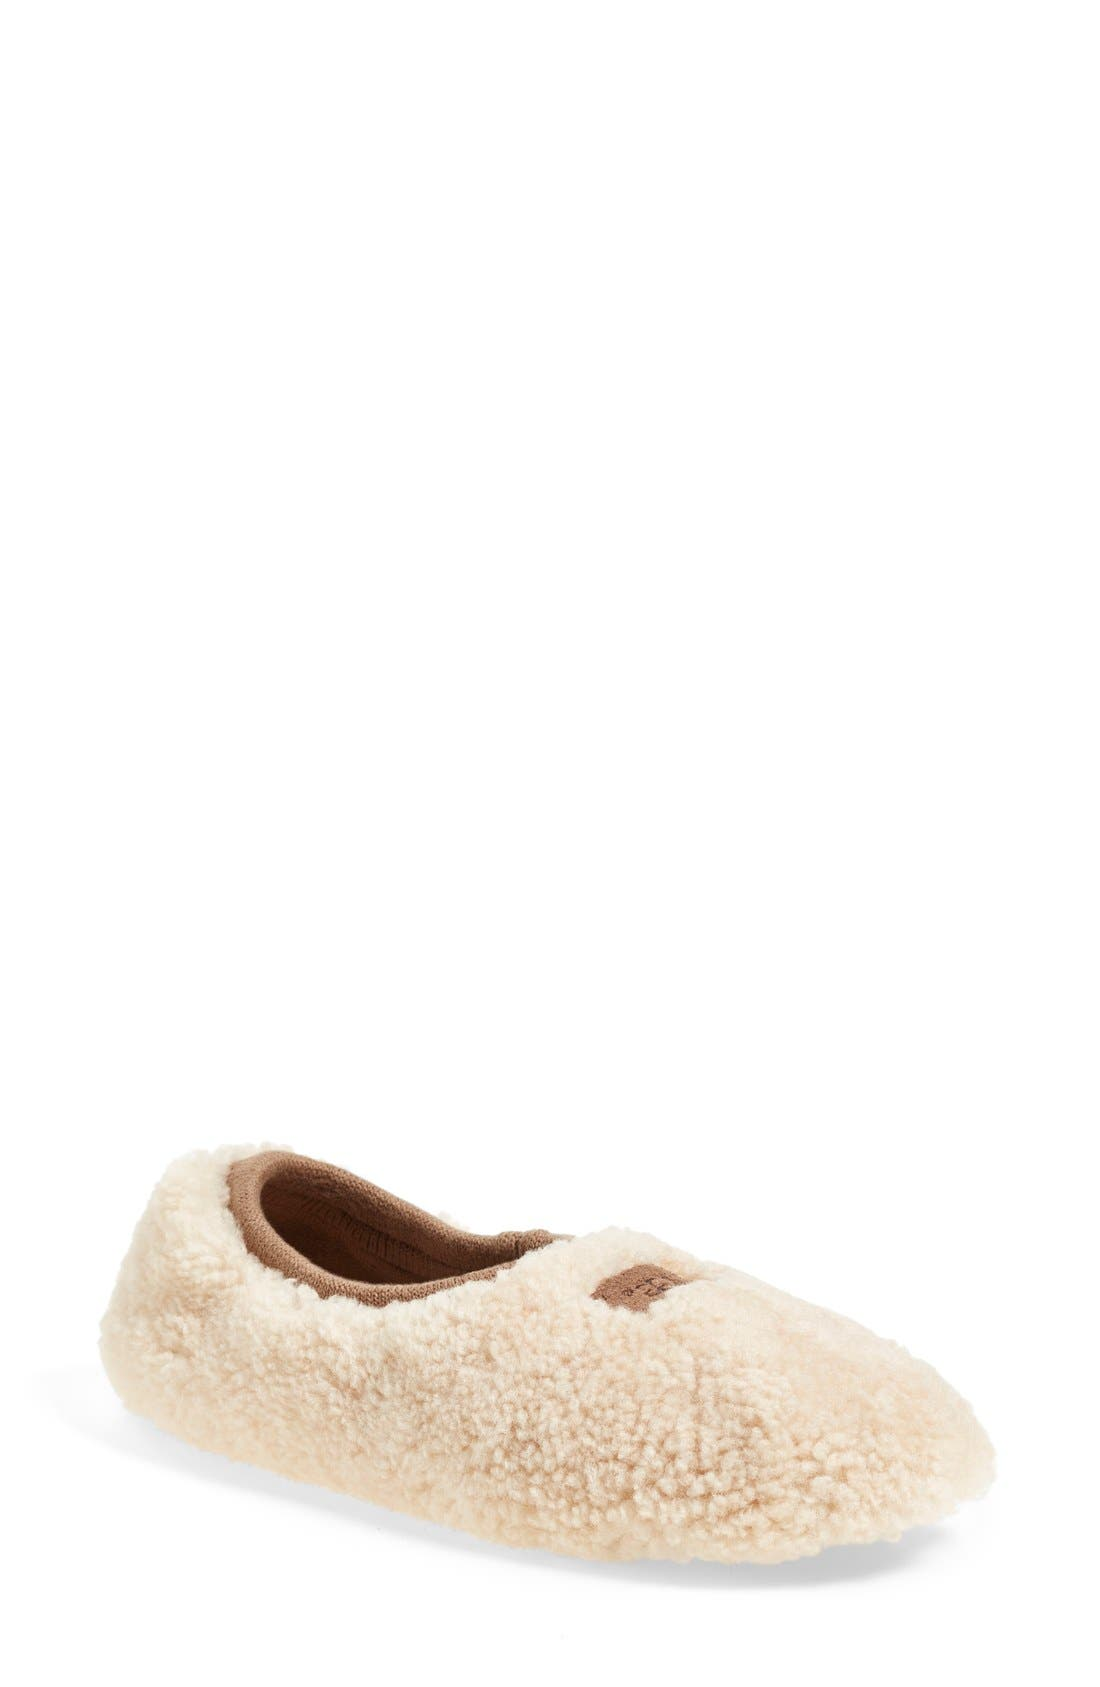 Alternate Image 1 Selected - UGG® Birche Slipper (Women)